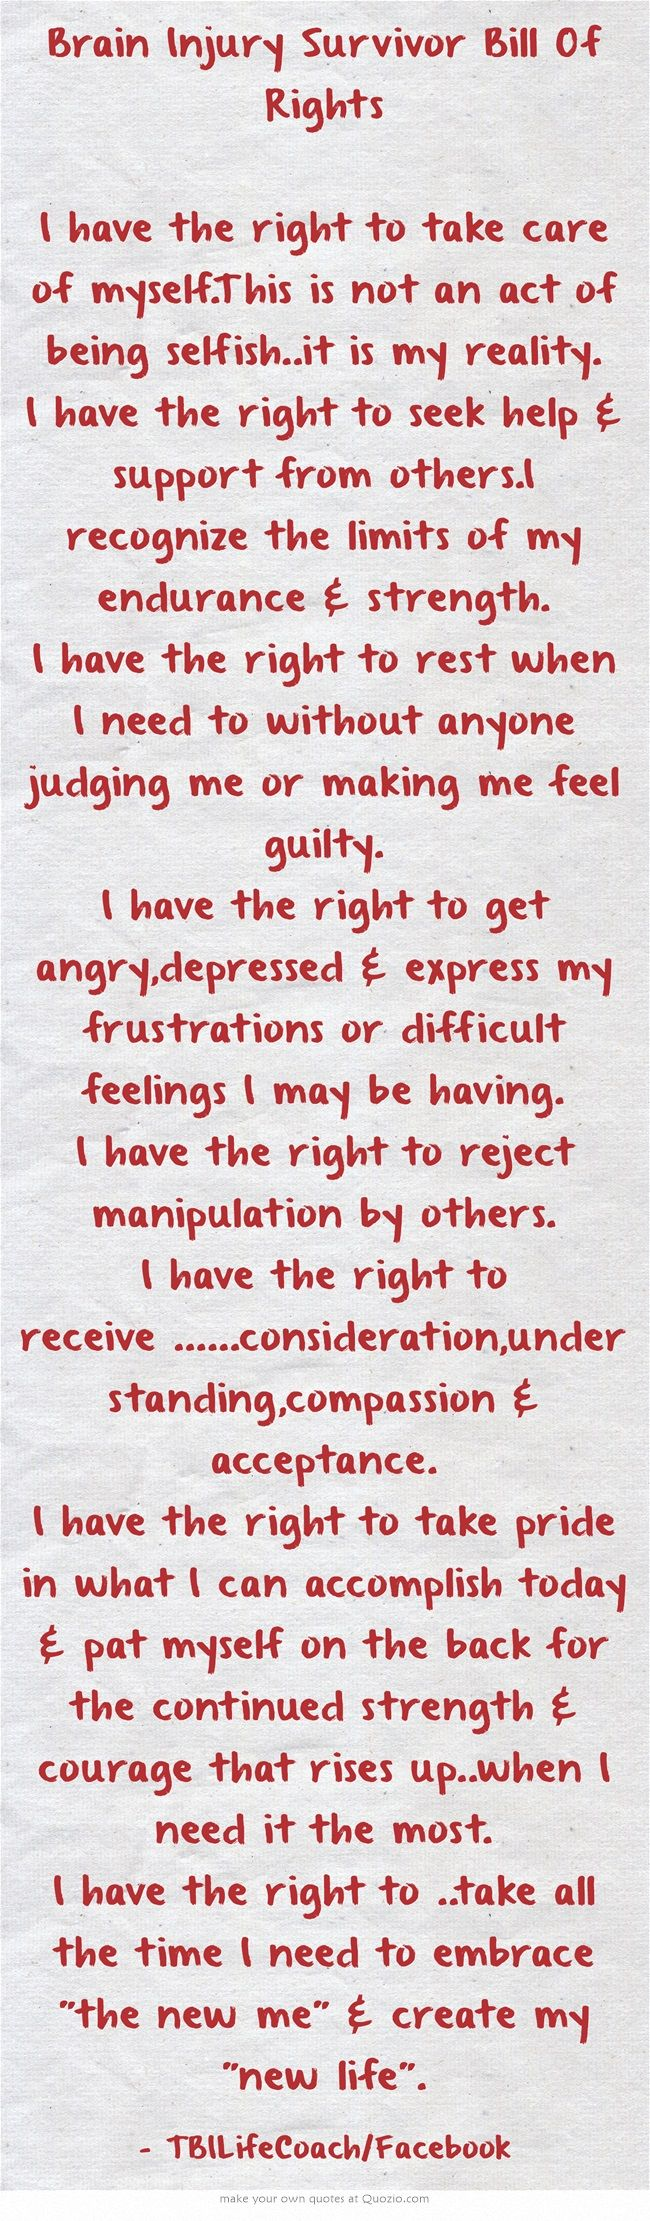 Brain Injury Survivor Bill Of Rights I have the right to take care of myself.This is not an act of being selfish..it is my reality. I have the right to seek help & support from others.I recognize the limits of my endurance & strength. I have the right to rest when I need to without anyone judging me or making me feel guilty. I have the right to get angry,depressed & express my frustrations or difficult feelings I may be having. I have the right to reject manipulation by...